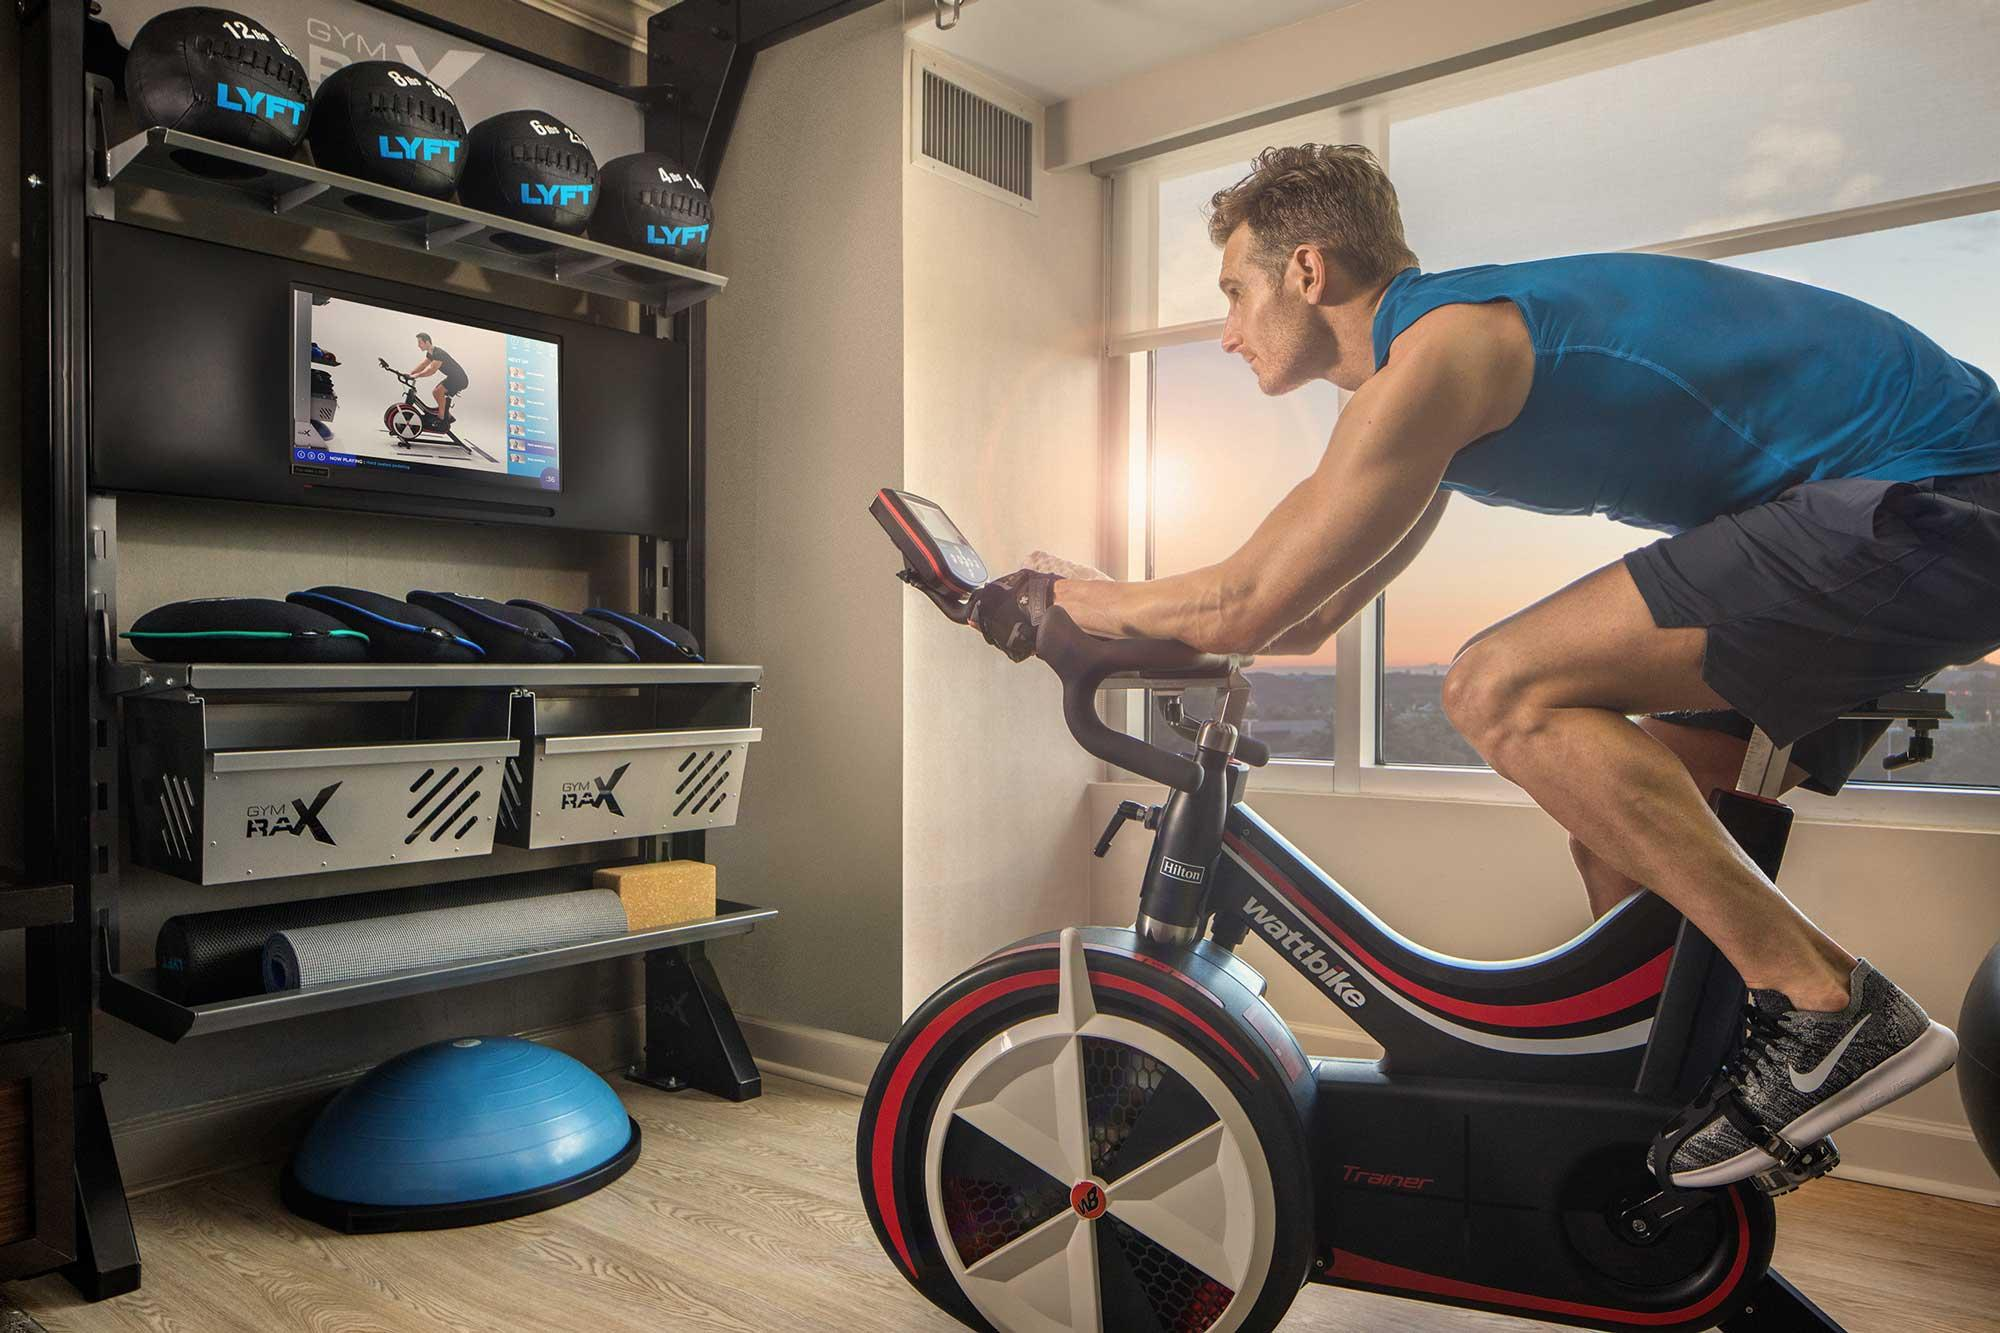 There may be a mini gym inside your next hotel room